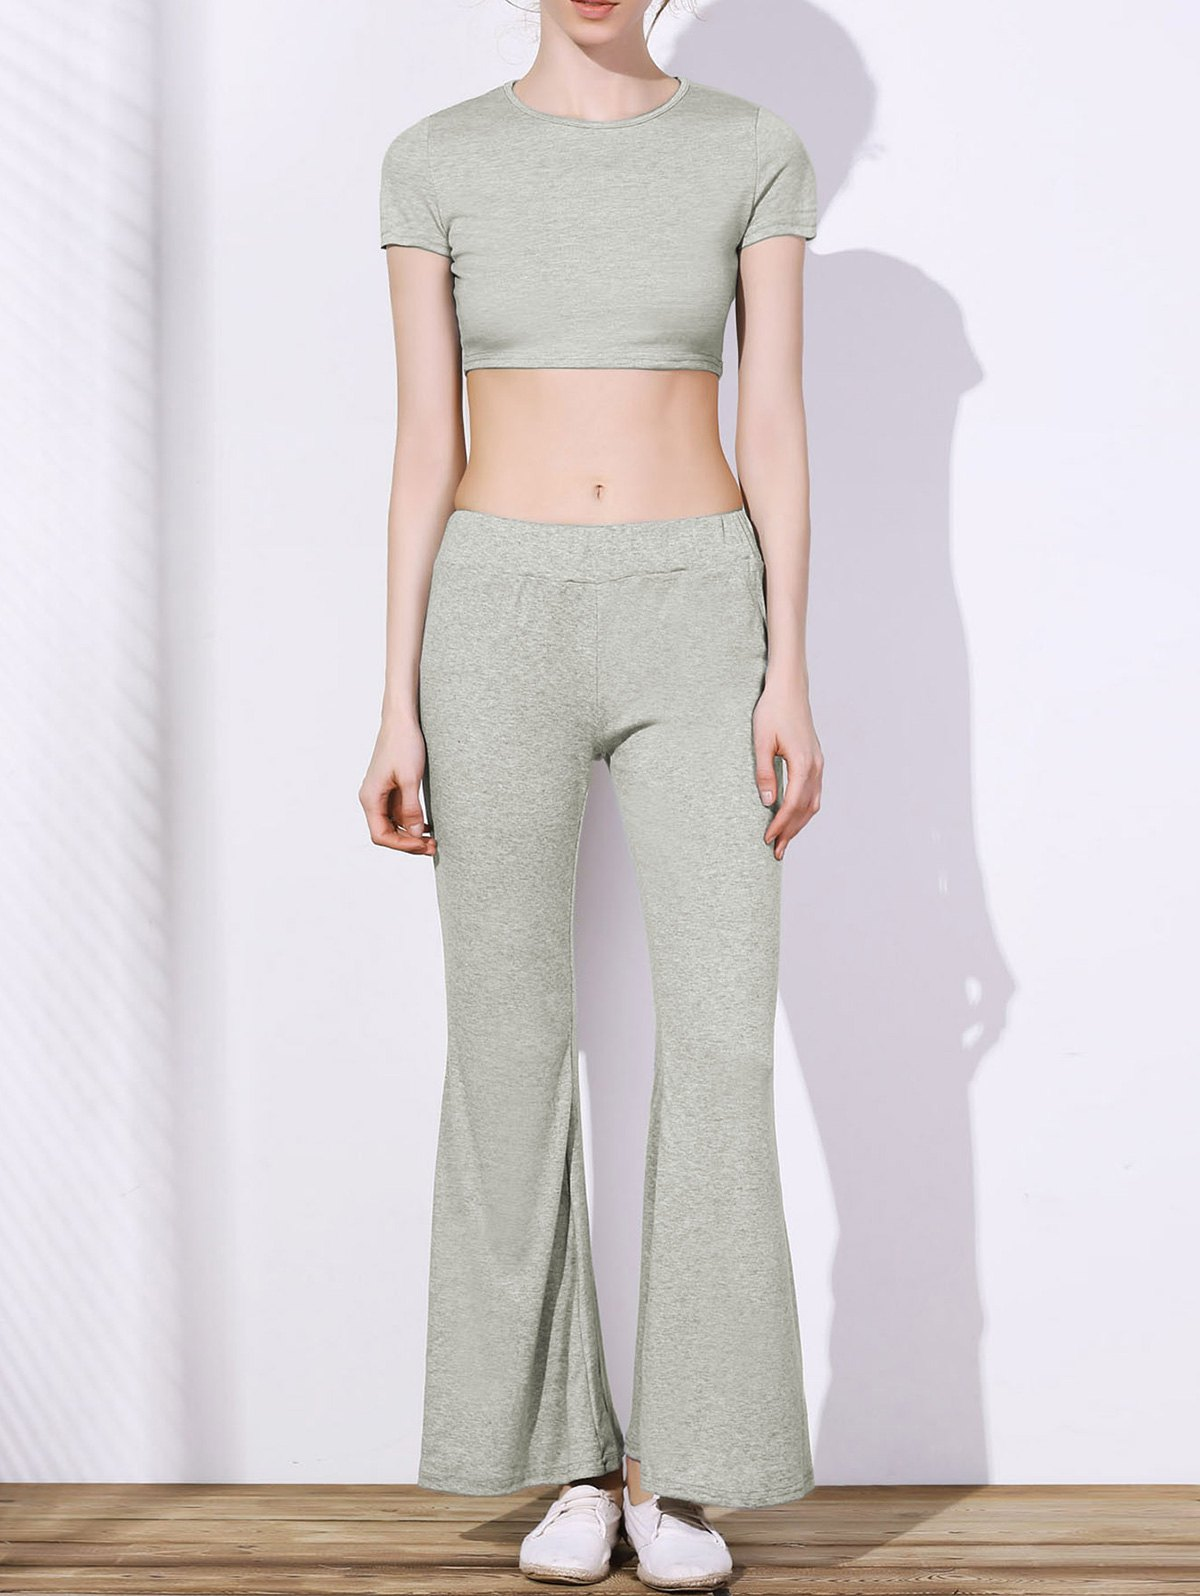 Women's Chic High Waist Pure Color Loose Flare Pants - GRAY S